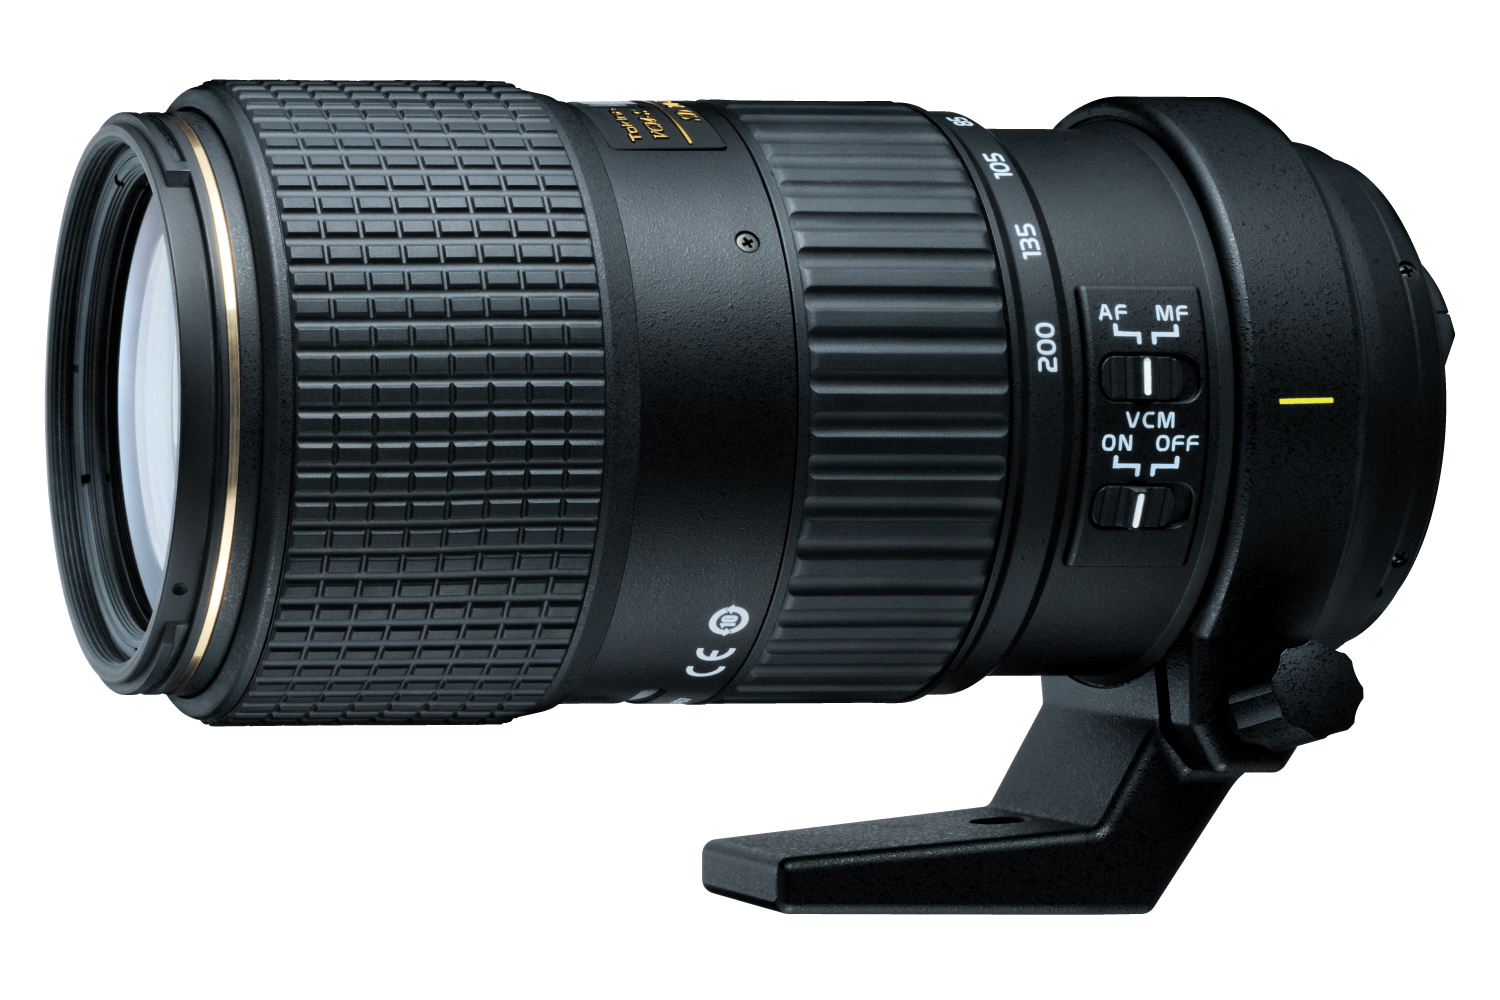 tokina at x 70 200mm f4 pro fx vcm s telephoto zoom lens announced camera news at cameraegg. Black Bedroom Furniture Sets. Home Design Ideas